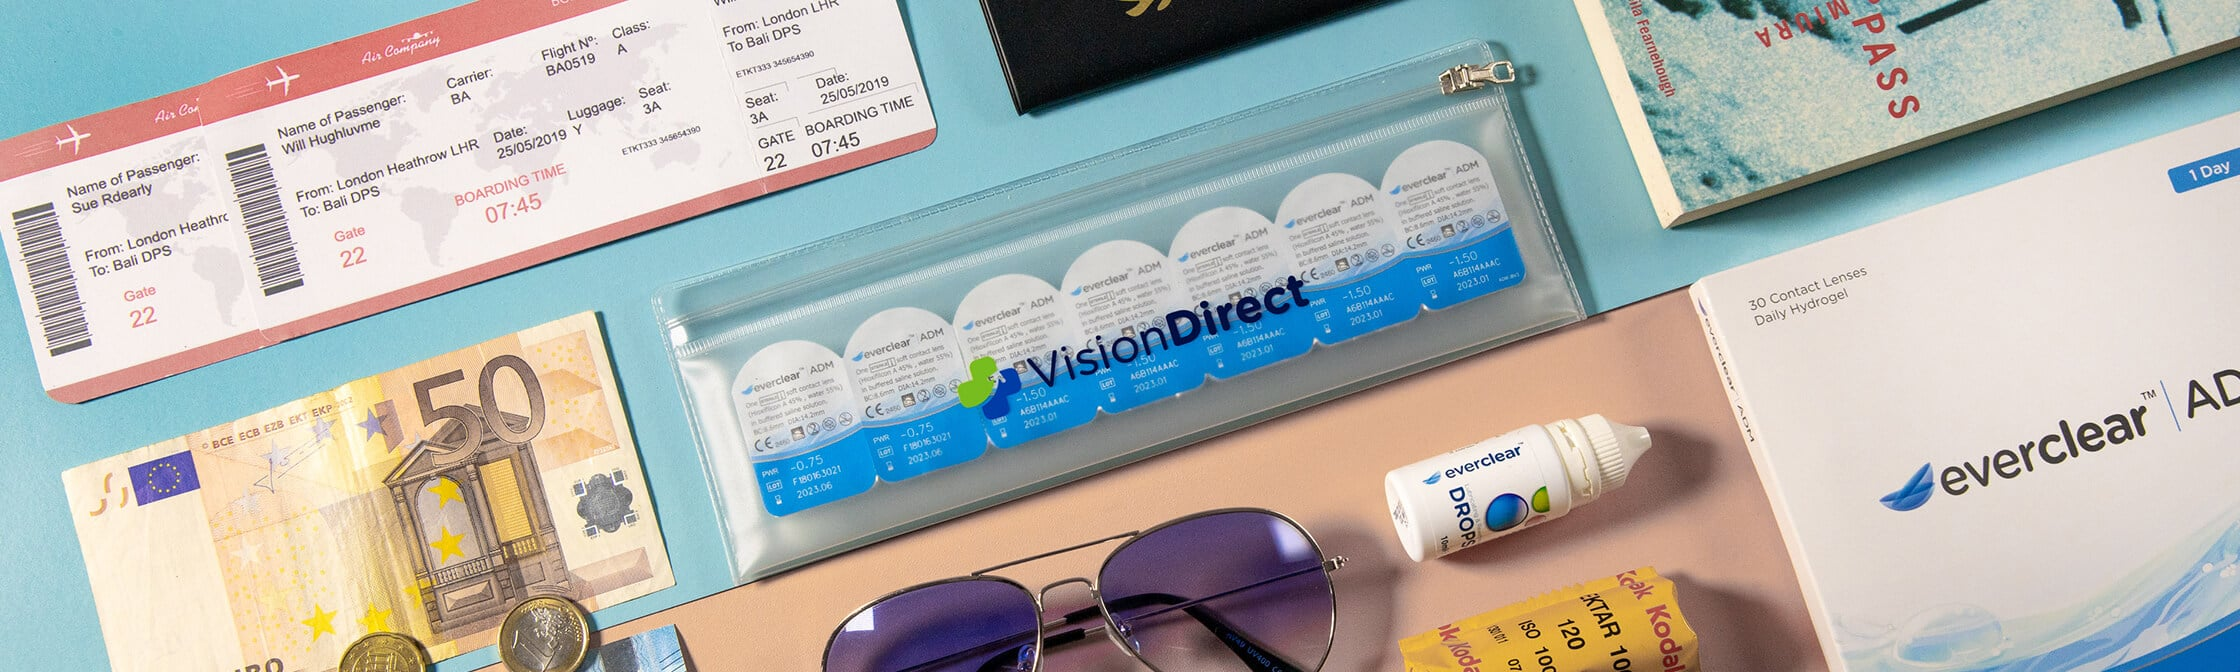 Contact lenses inside a plastic travel case